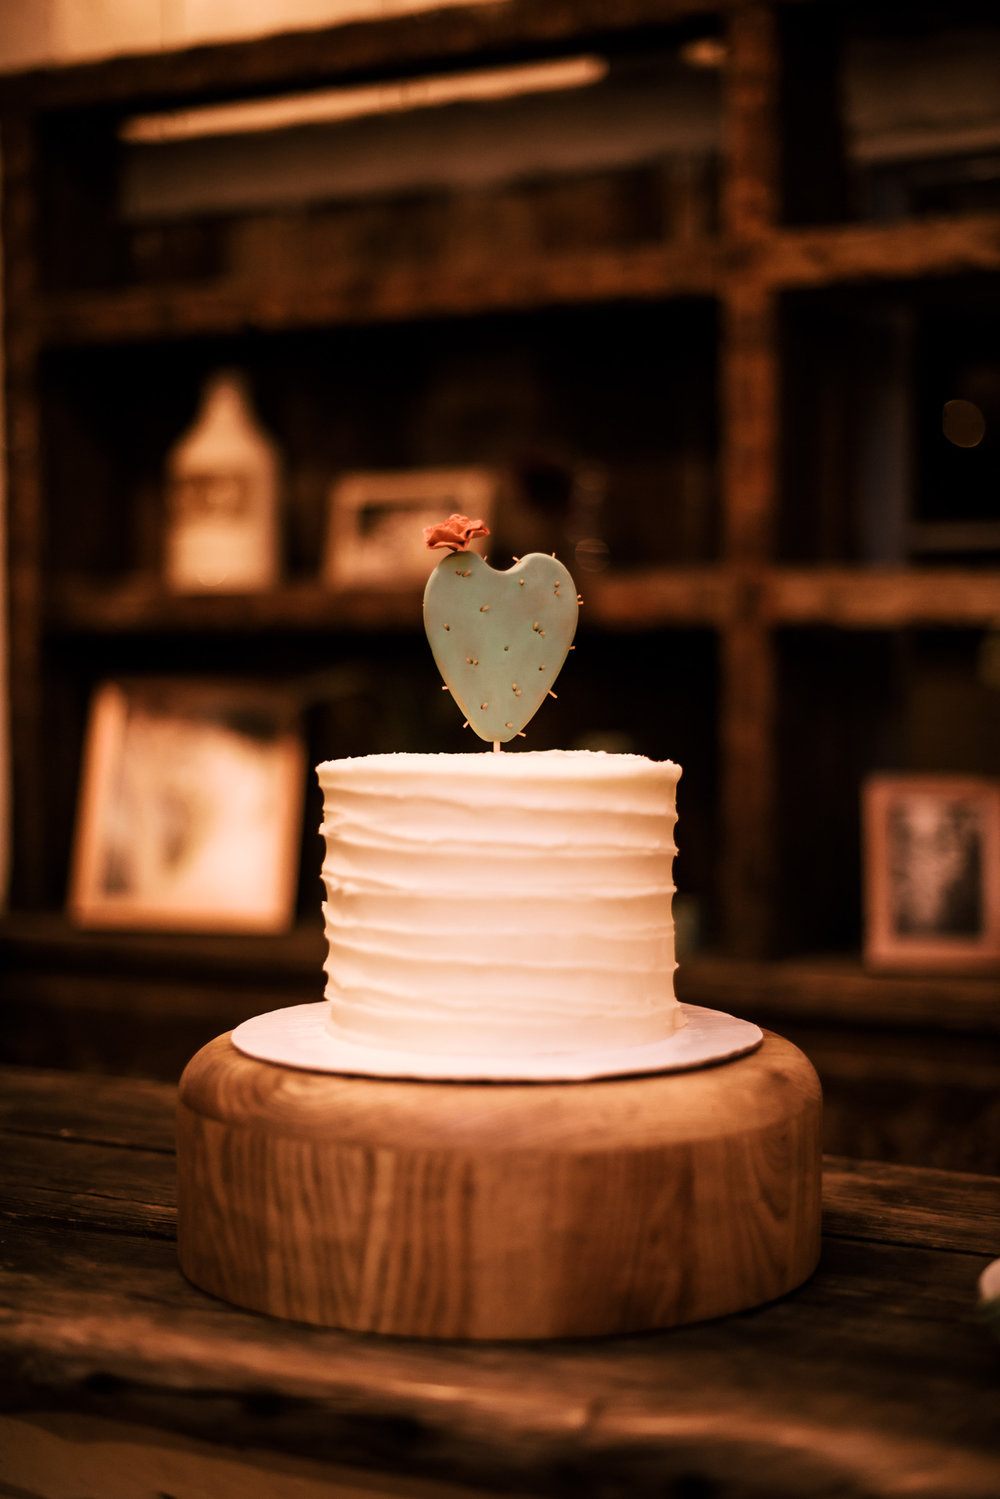 great cake idea for rustic decor captured by photographer during romantic wedding at the historic Leo Carrillo Ranch in Carlsbad California